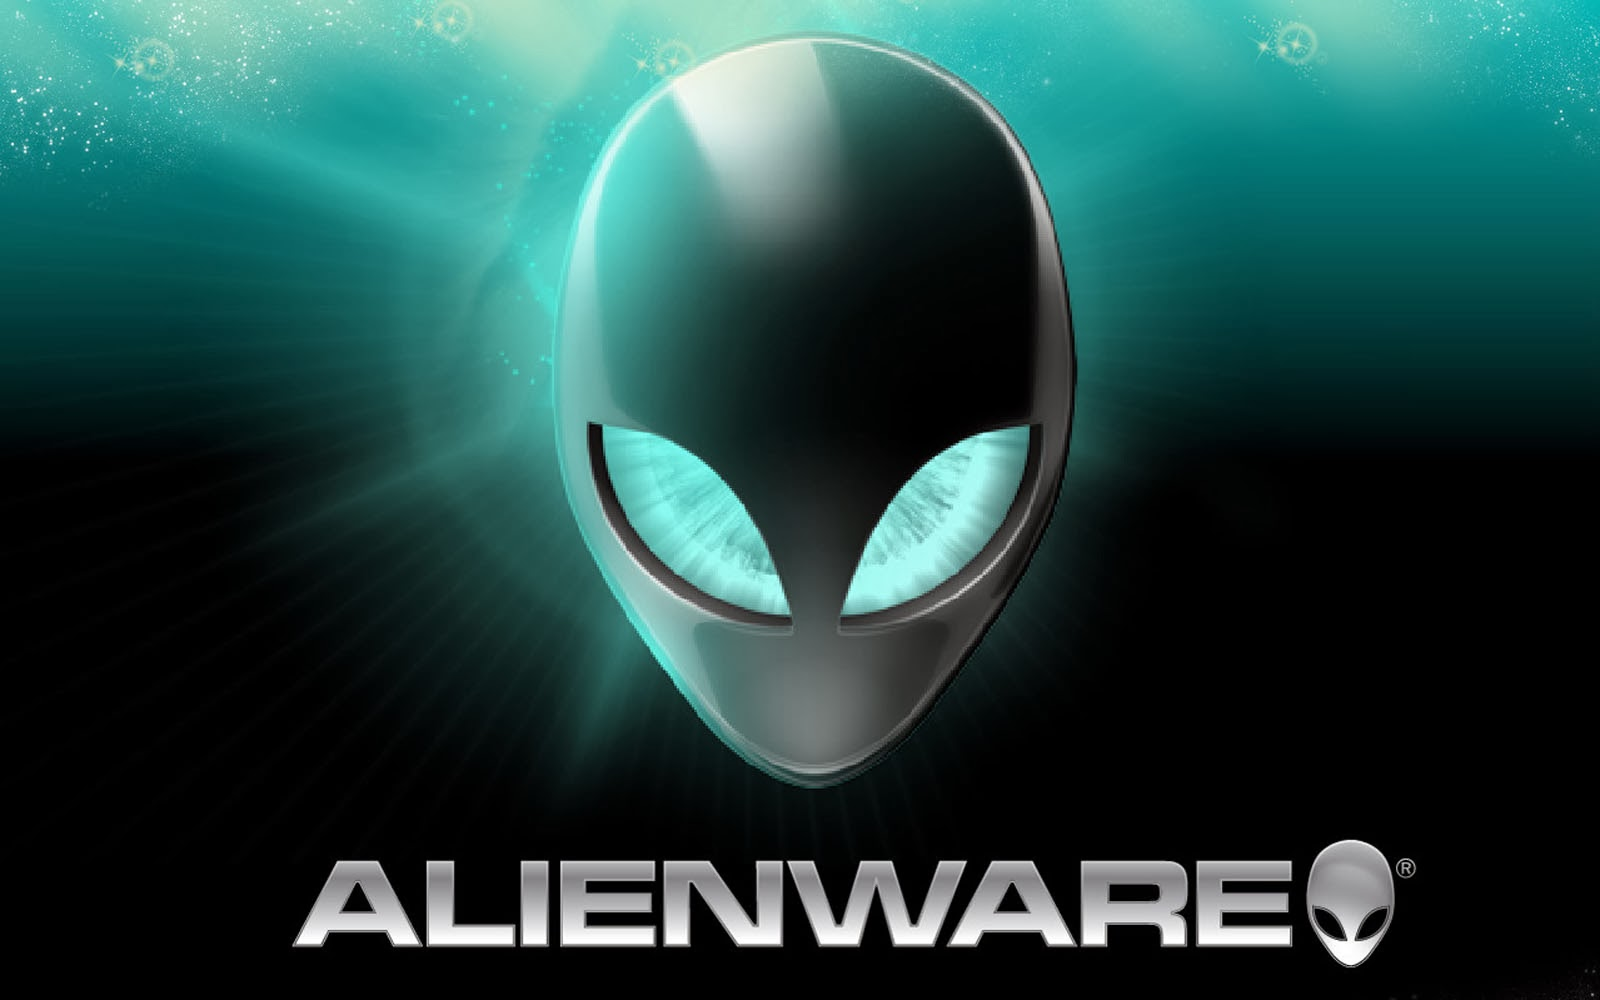 Alienware wallpapers for windows 7 wallpapersafari - Alienware Wallpaper Windows 10 Wallpapersafari